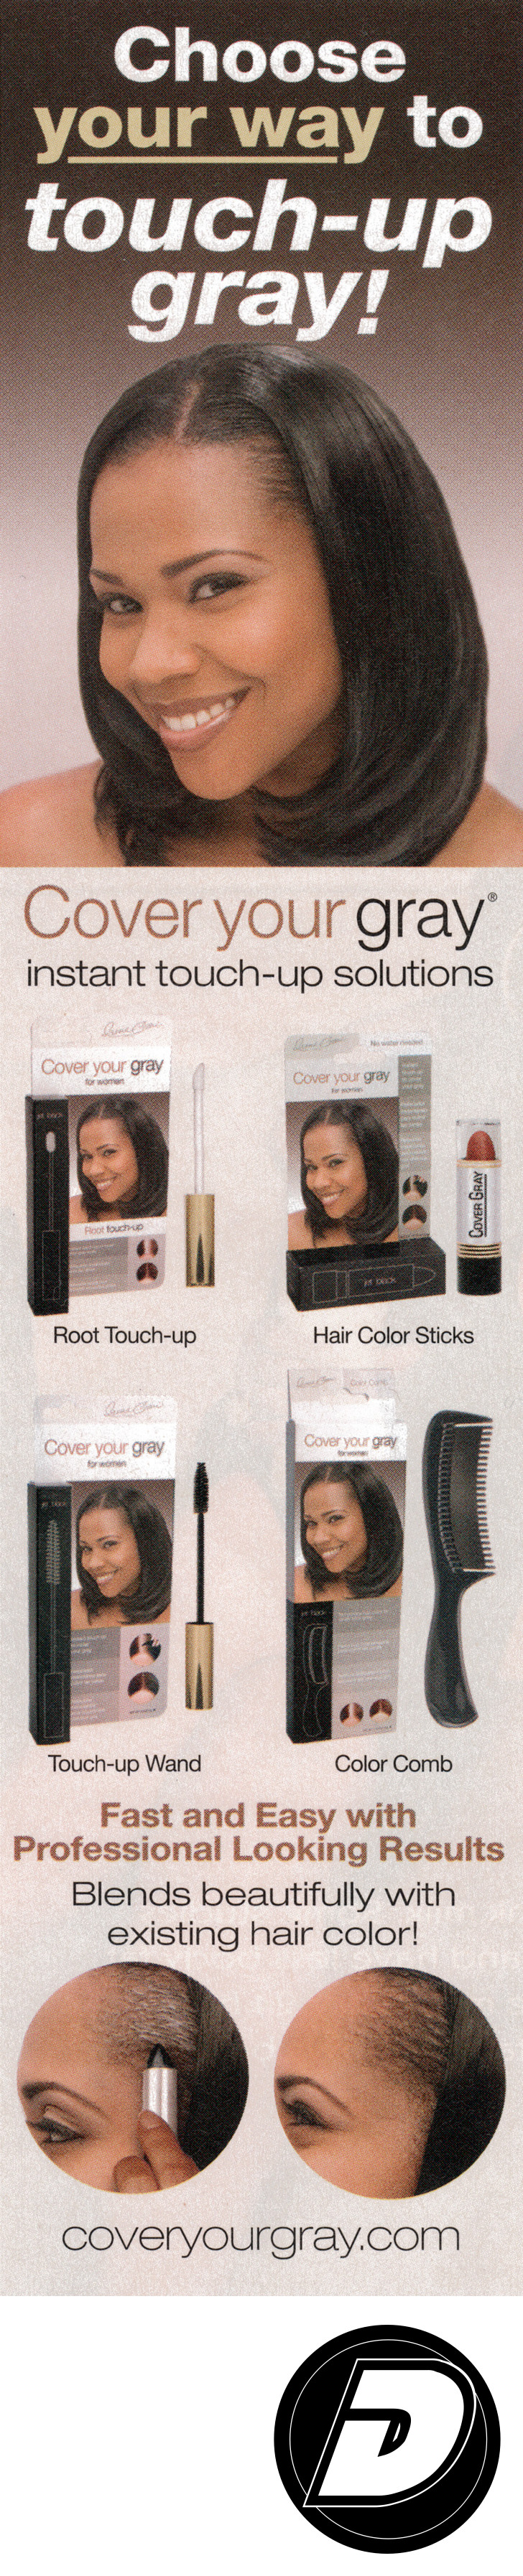 Touch UP Your Gray Advertising Photographer